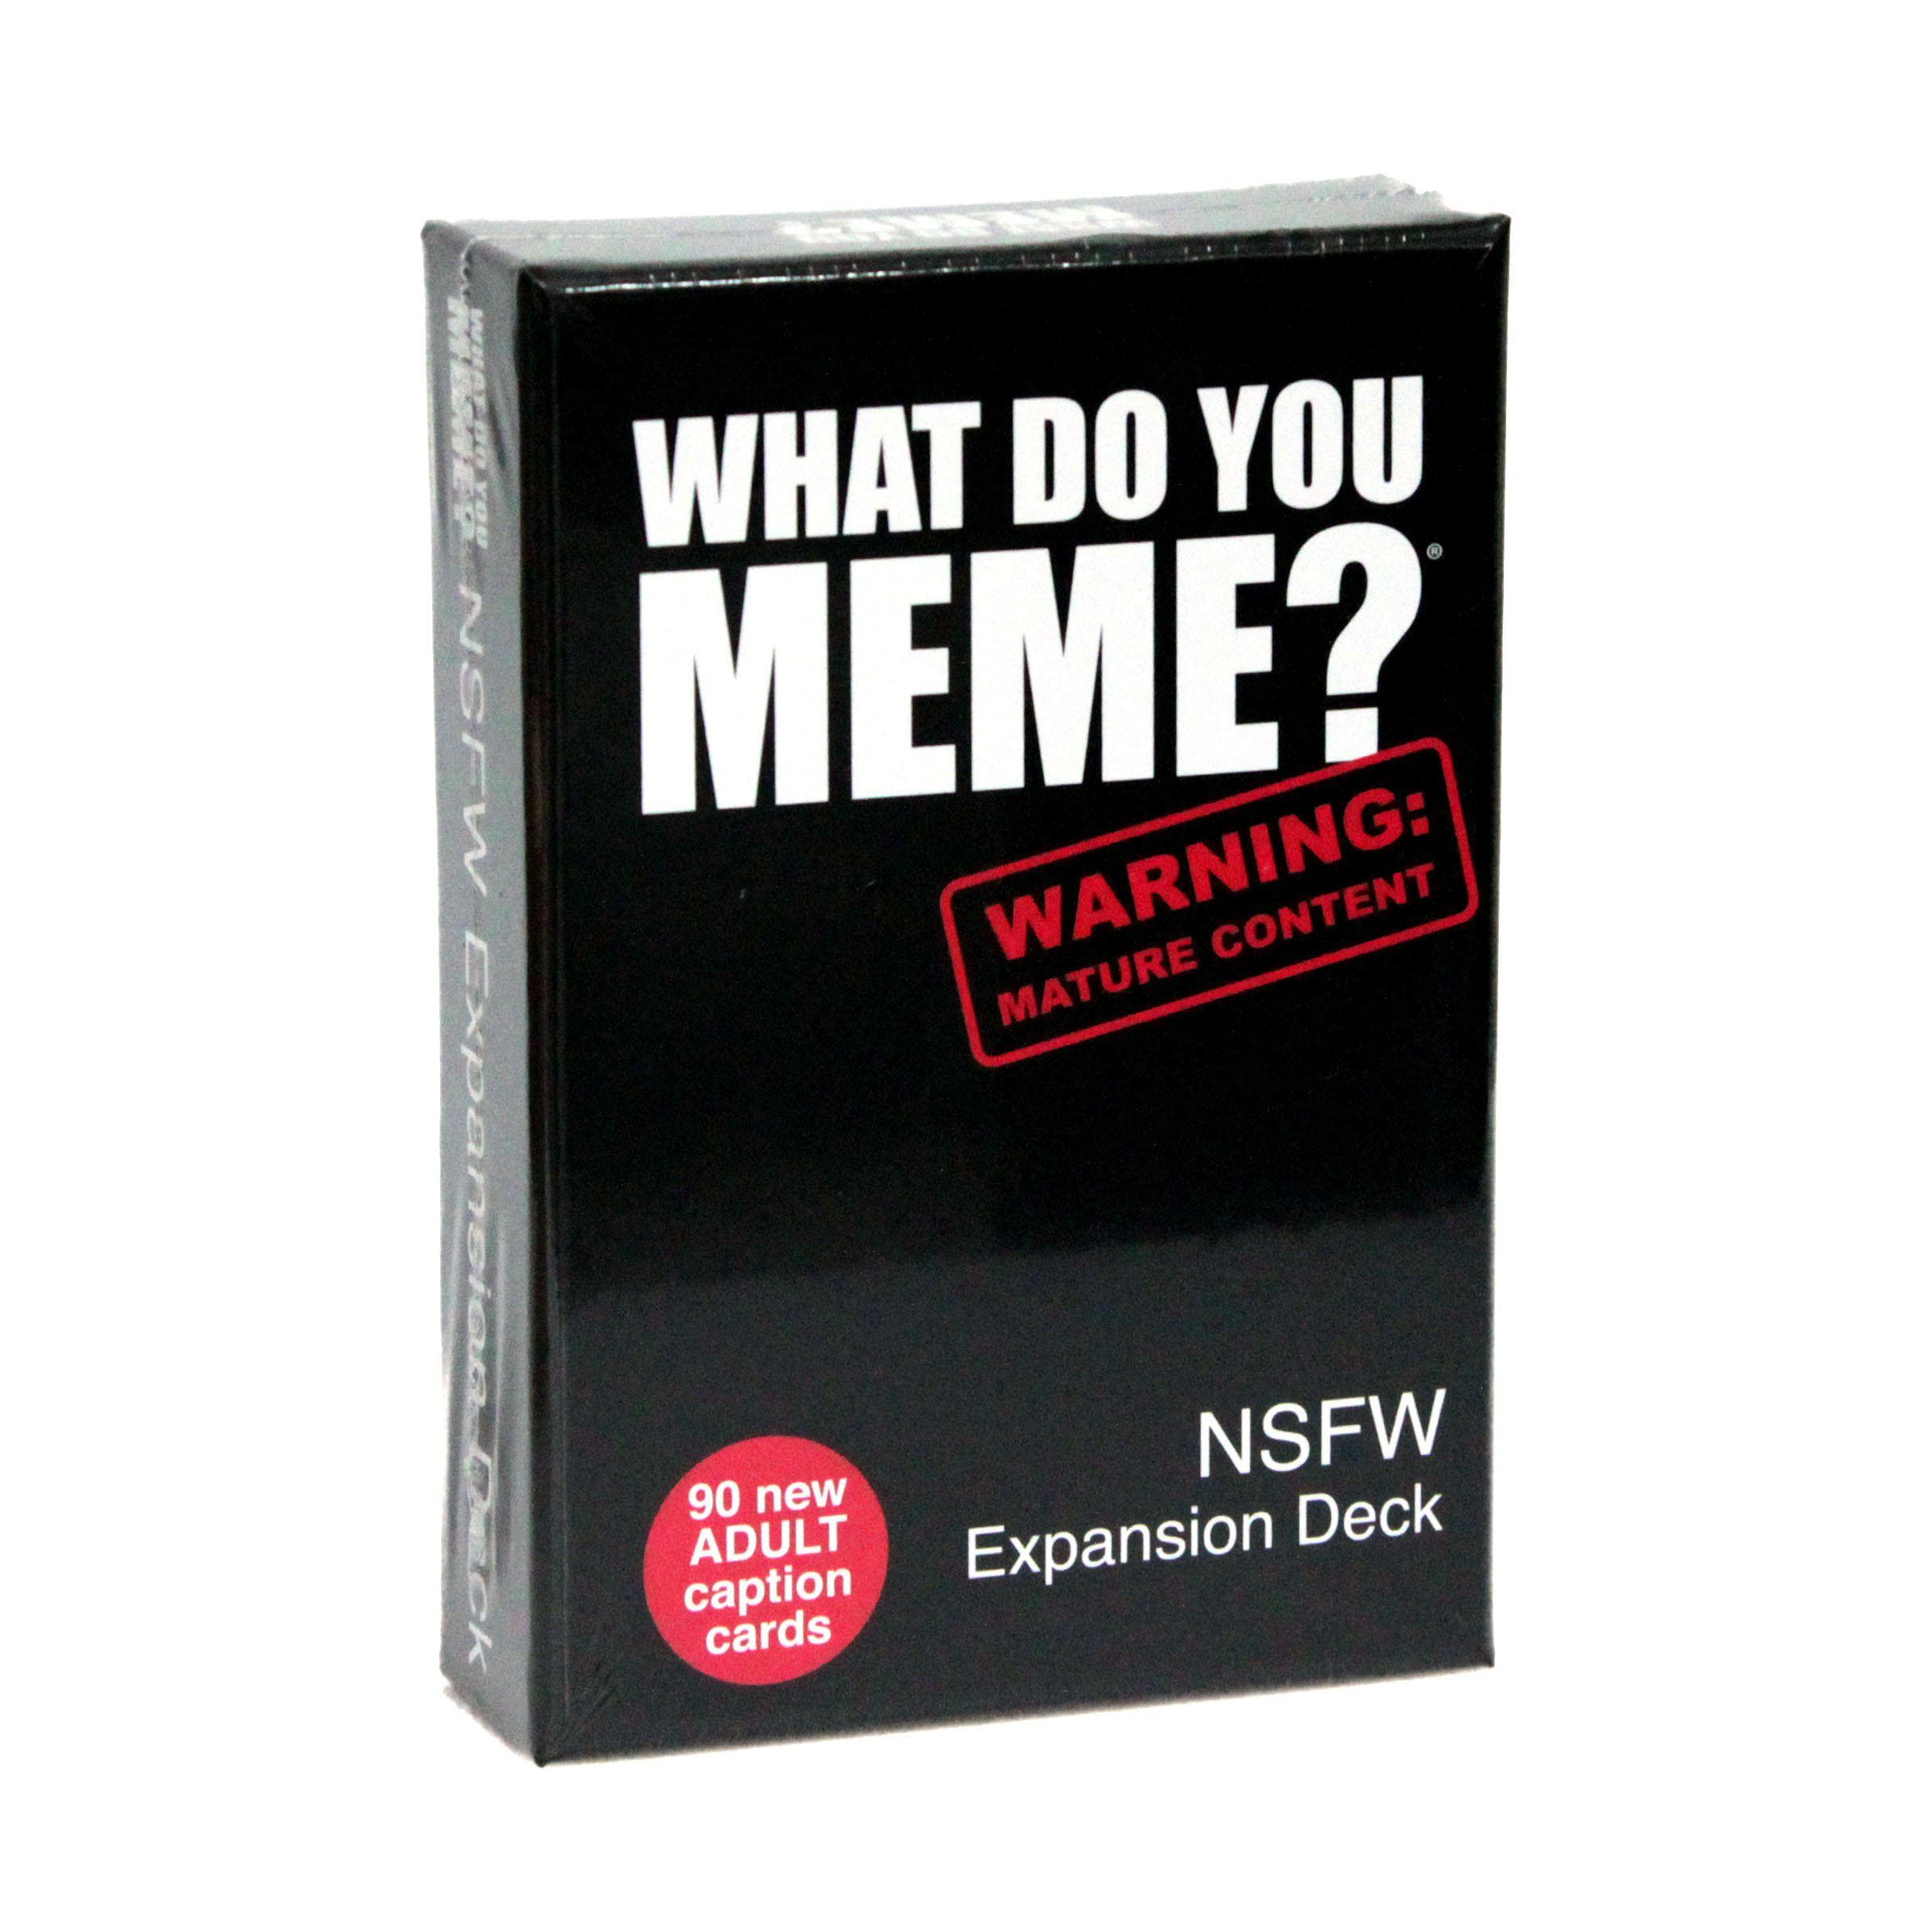 What Do You Meme? NSFW Expansion Deck Our raunchiest, most disgusting expansion pack yet. THESE MEMES ARE NSFW: Don't say we didn't warn you. Play with mom/grandma/uncle at your own risk!90 brand new ADULT caption cards to be added to core game.*Required What Do You Meme? core game to play.